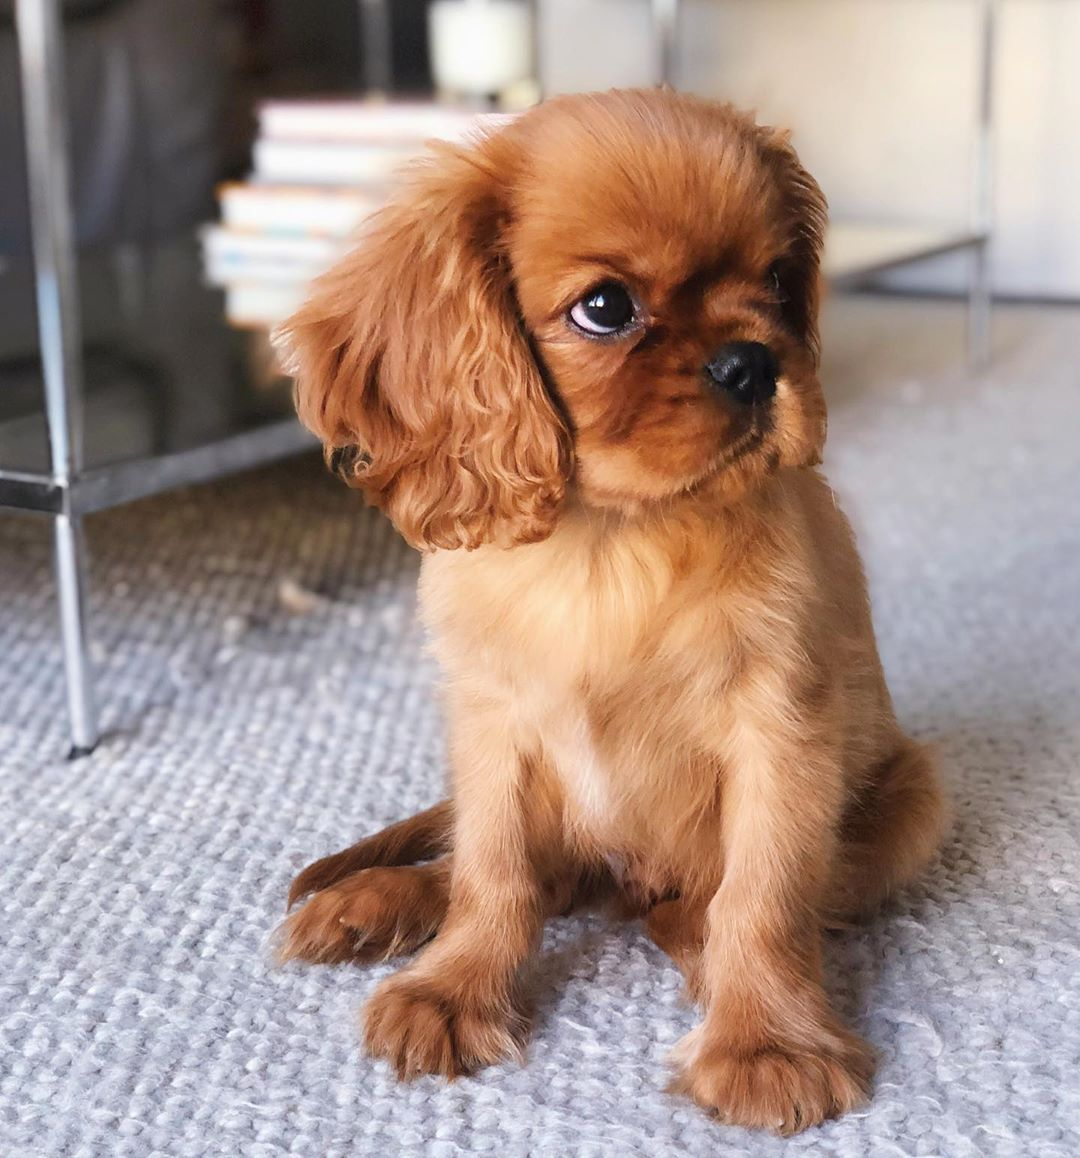 Benson Graham On Instagram Nothing Like A Baby Cavalier Face What A Doll Cavalier King Charles Dog Ruby Cavalier King Charles Spaniel Puppy Cavalier Puppy